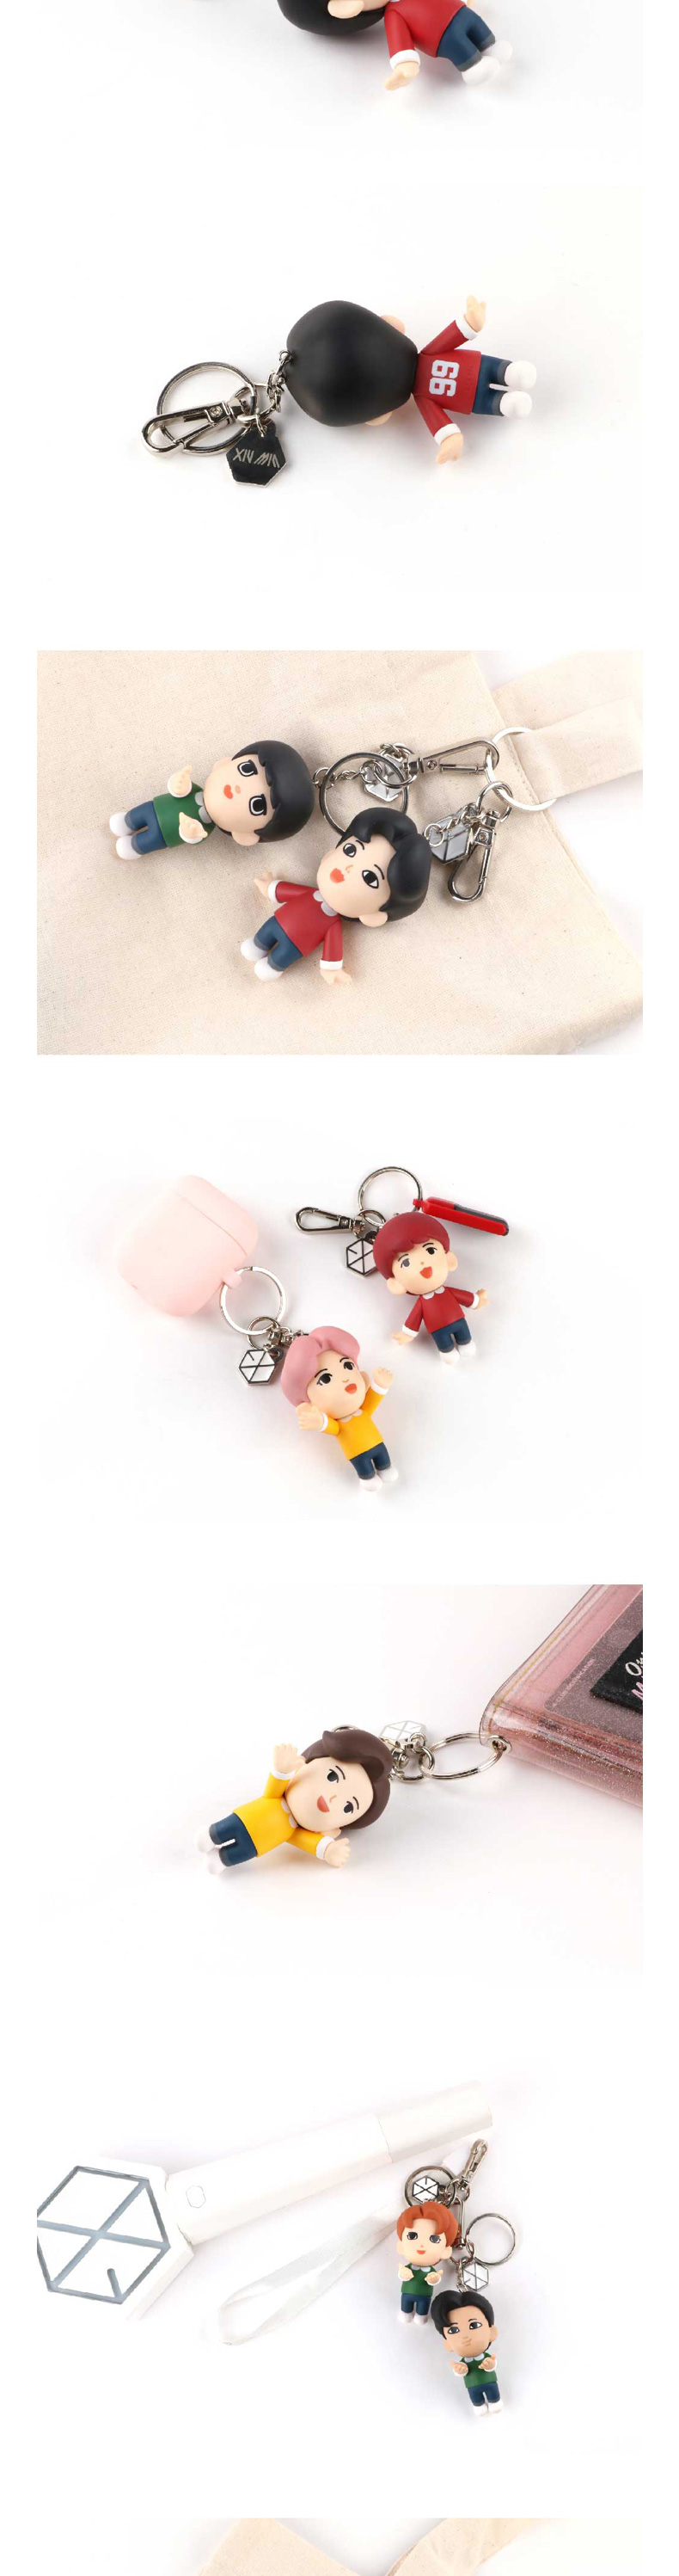 EXO - FIGURE KEYRING (CHANYEOL) (Mirror included)